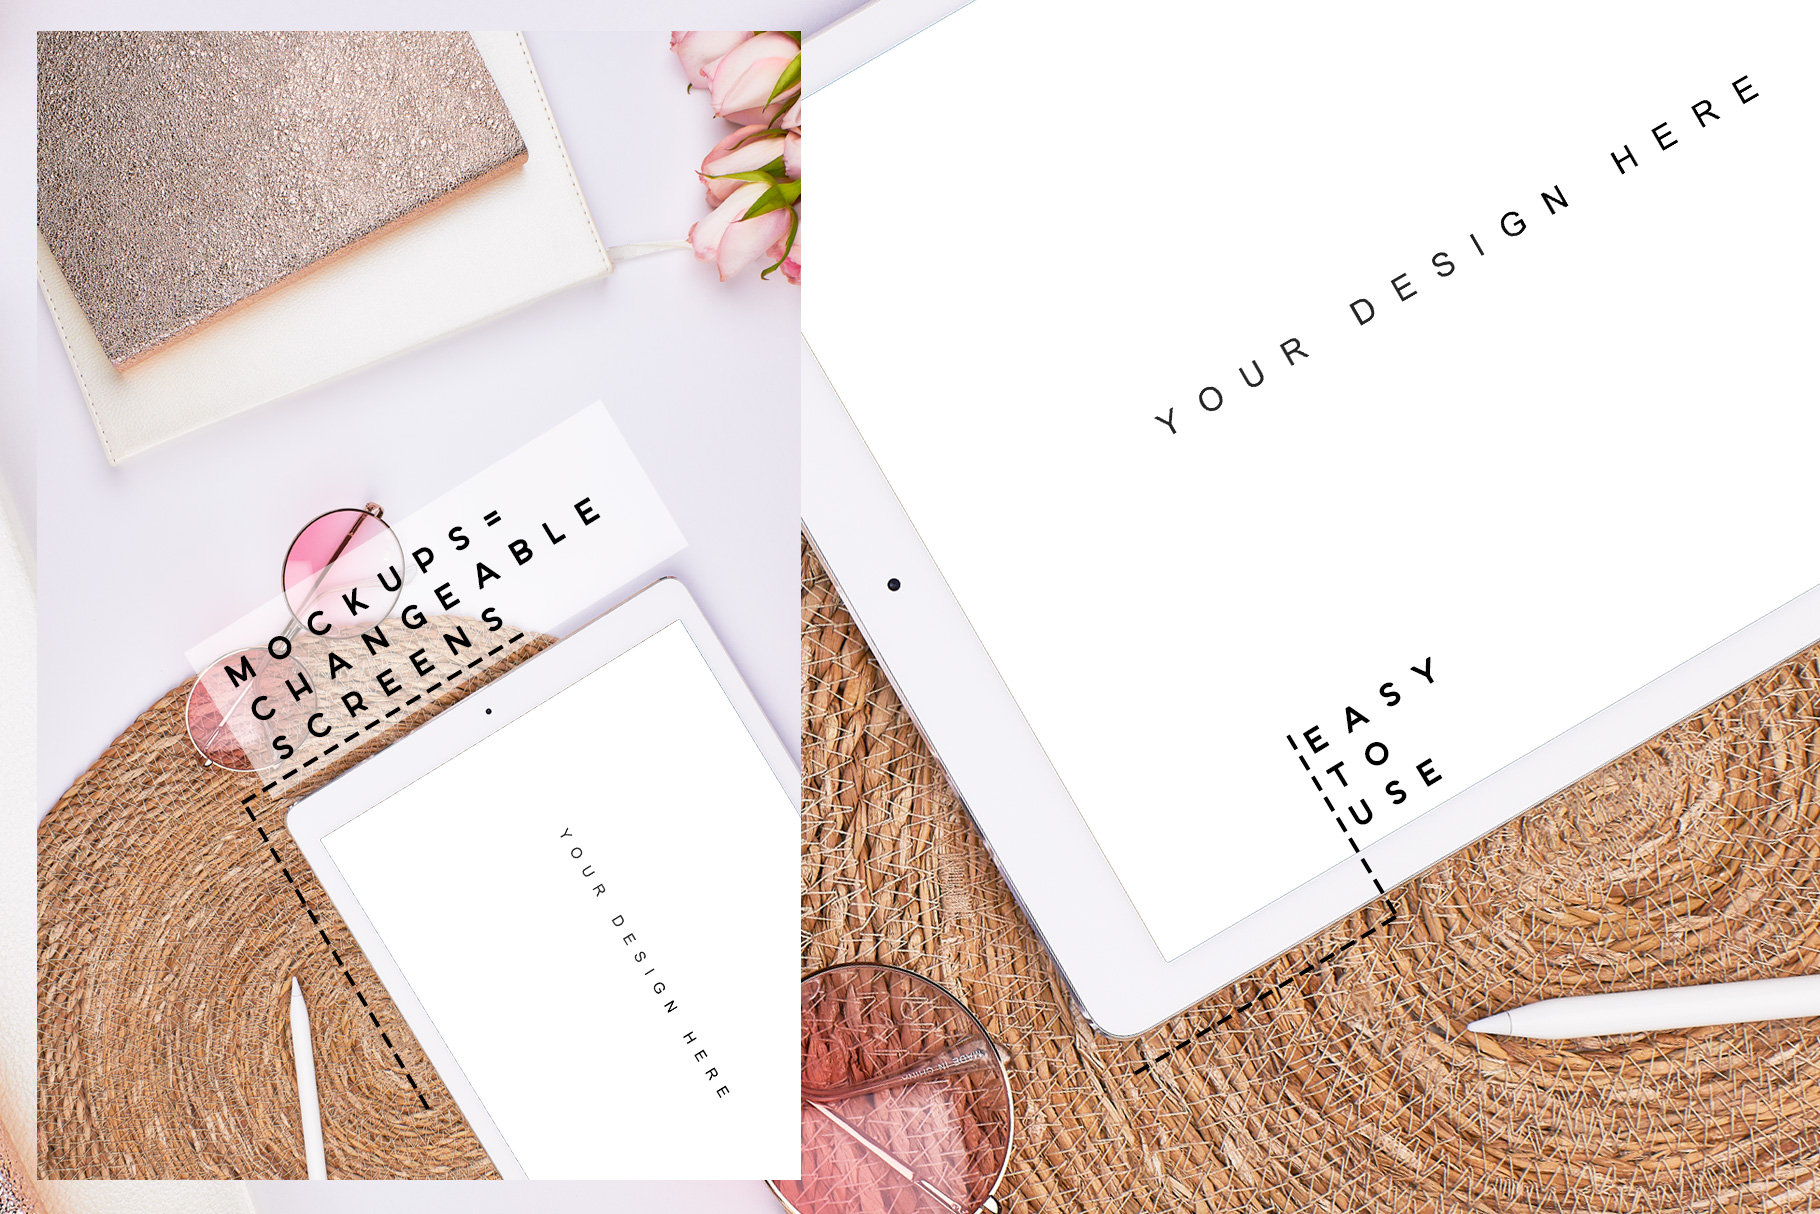 04-pink-blogger-summer-stock-images-bundle-sunglas-mockup-ipad-iphone-hand-planner